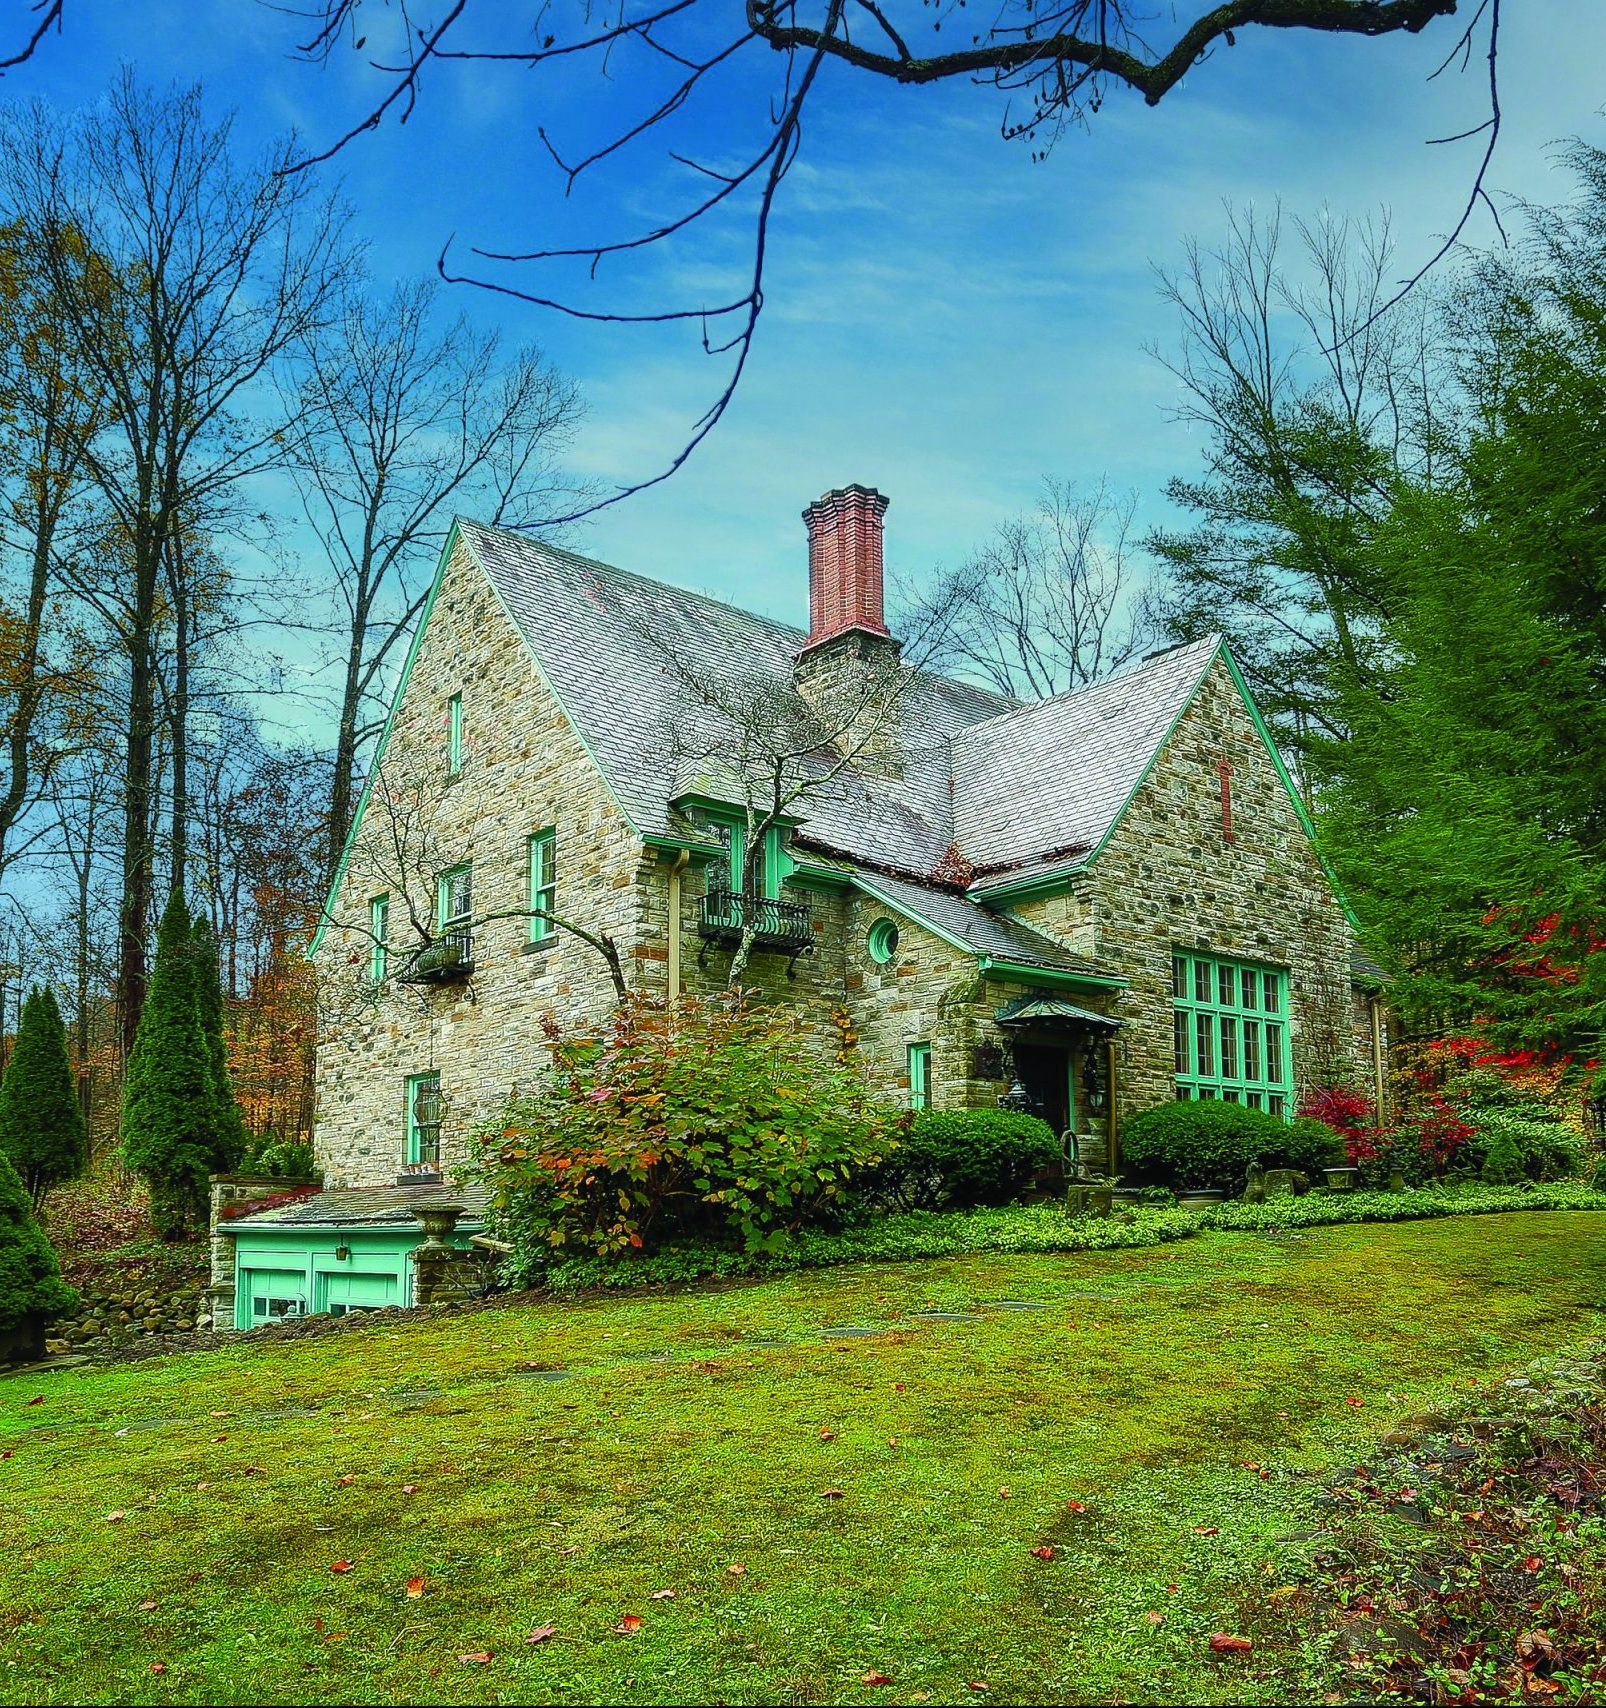 Before buying a historic home, learn about its charm, challenges